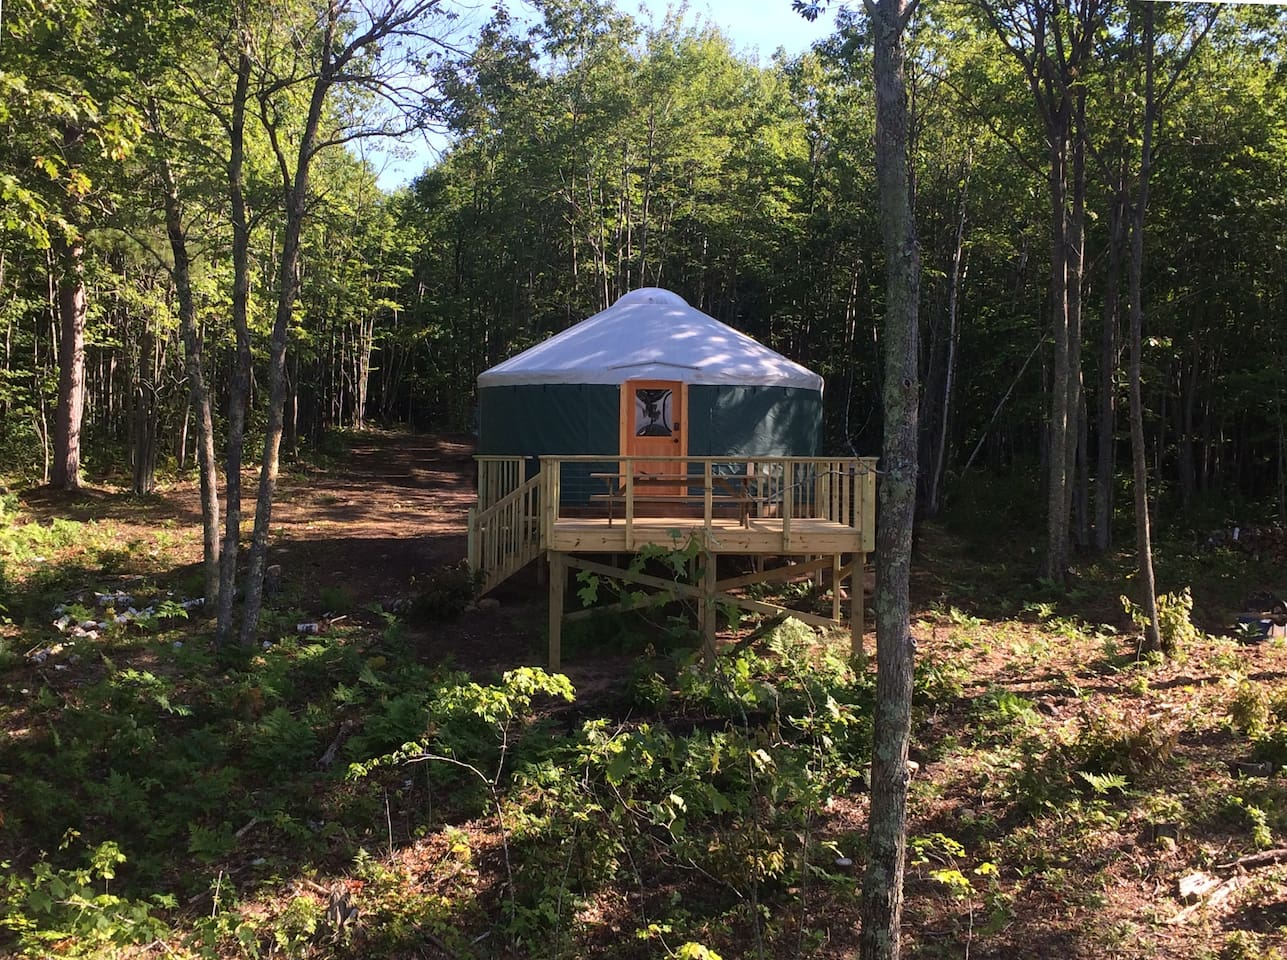 Front view of the yurt, from a distance.